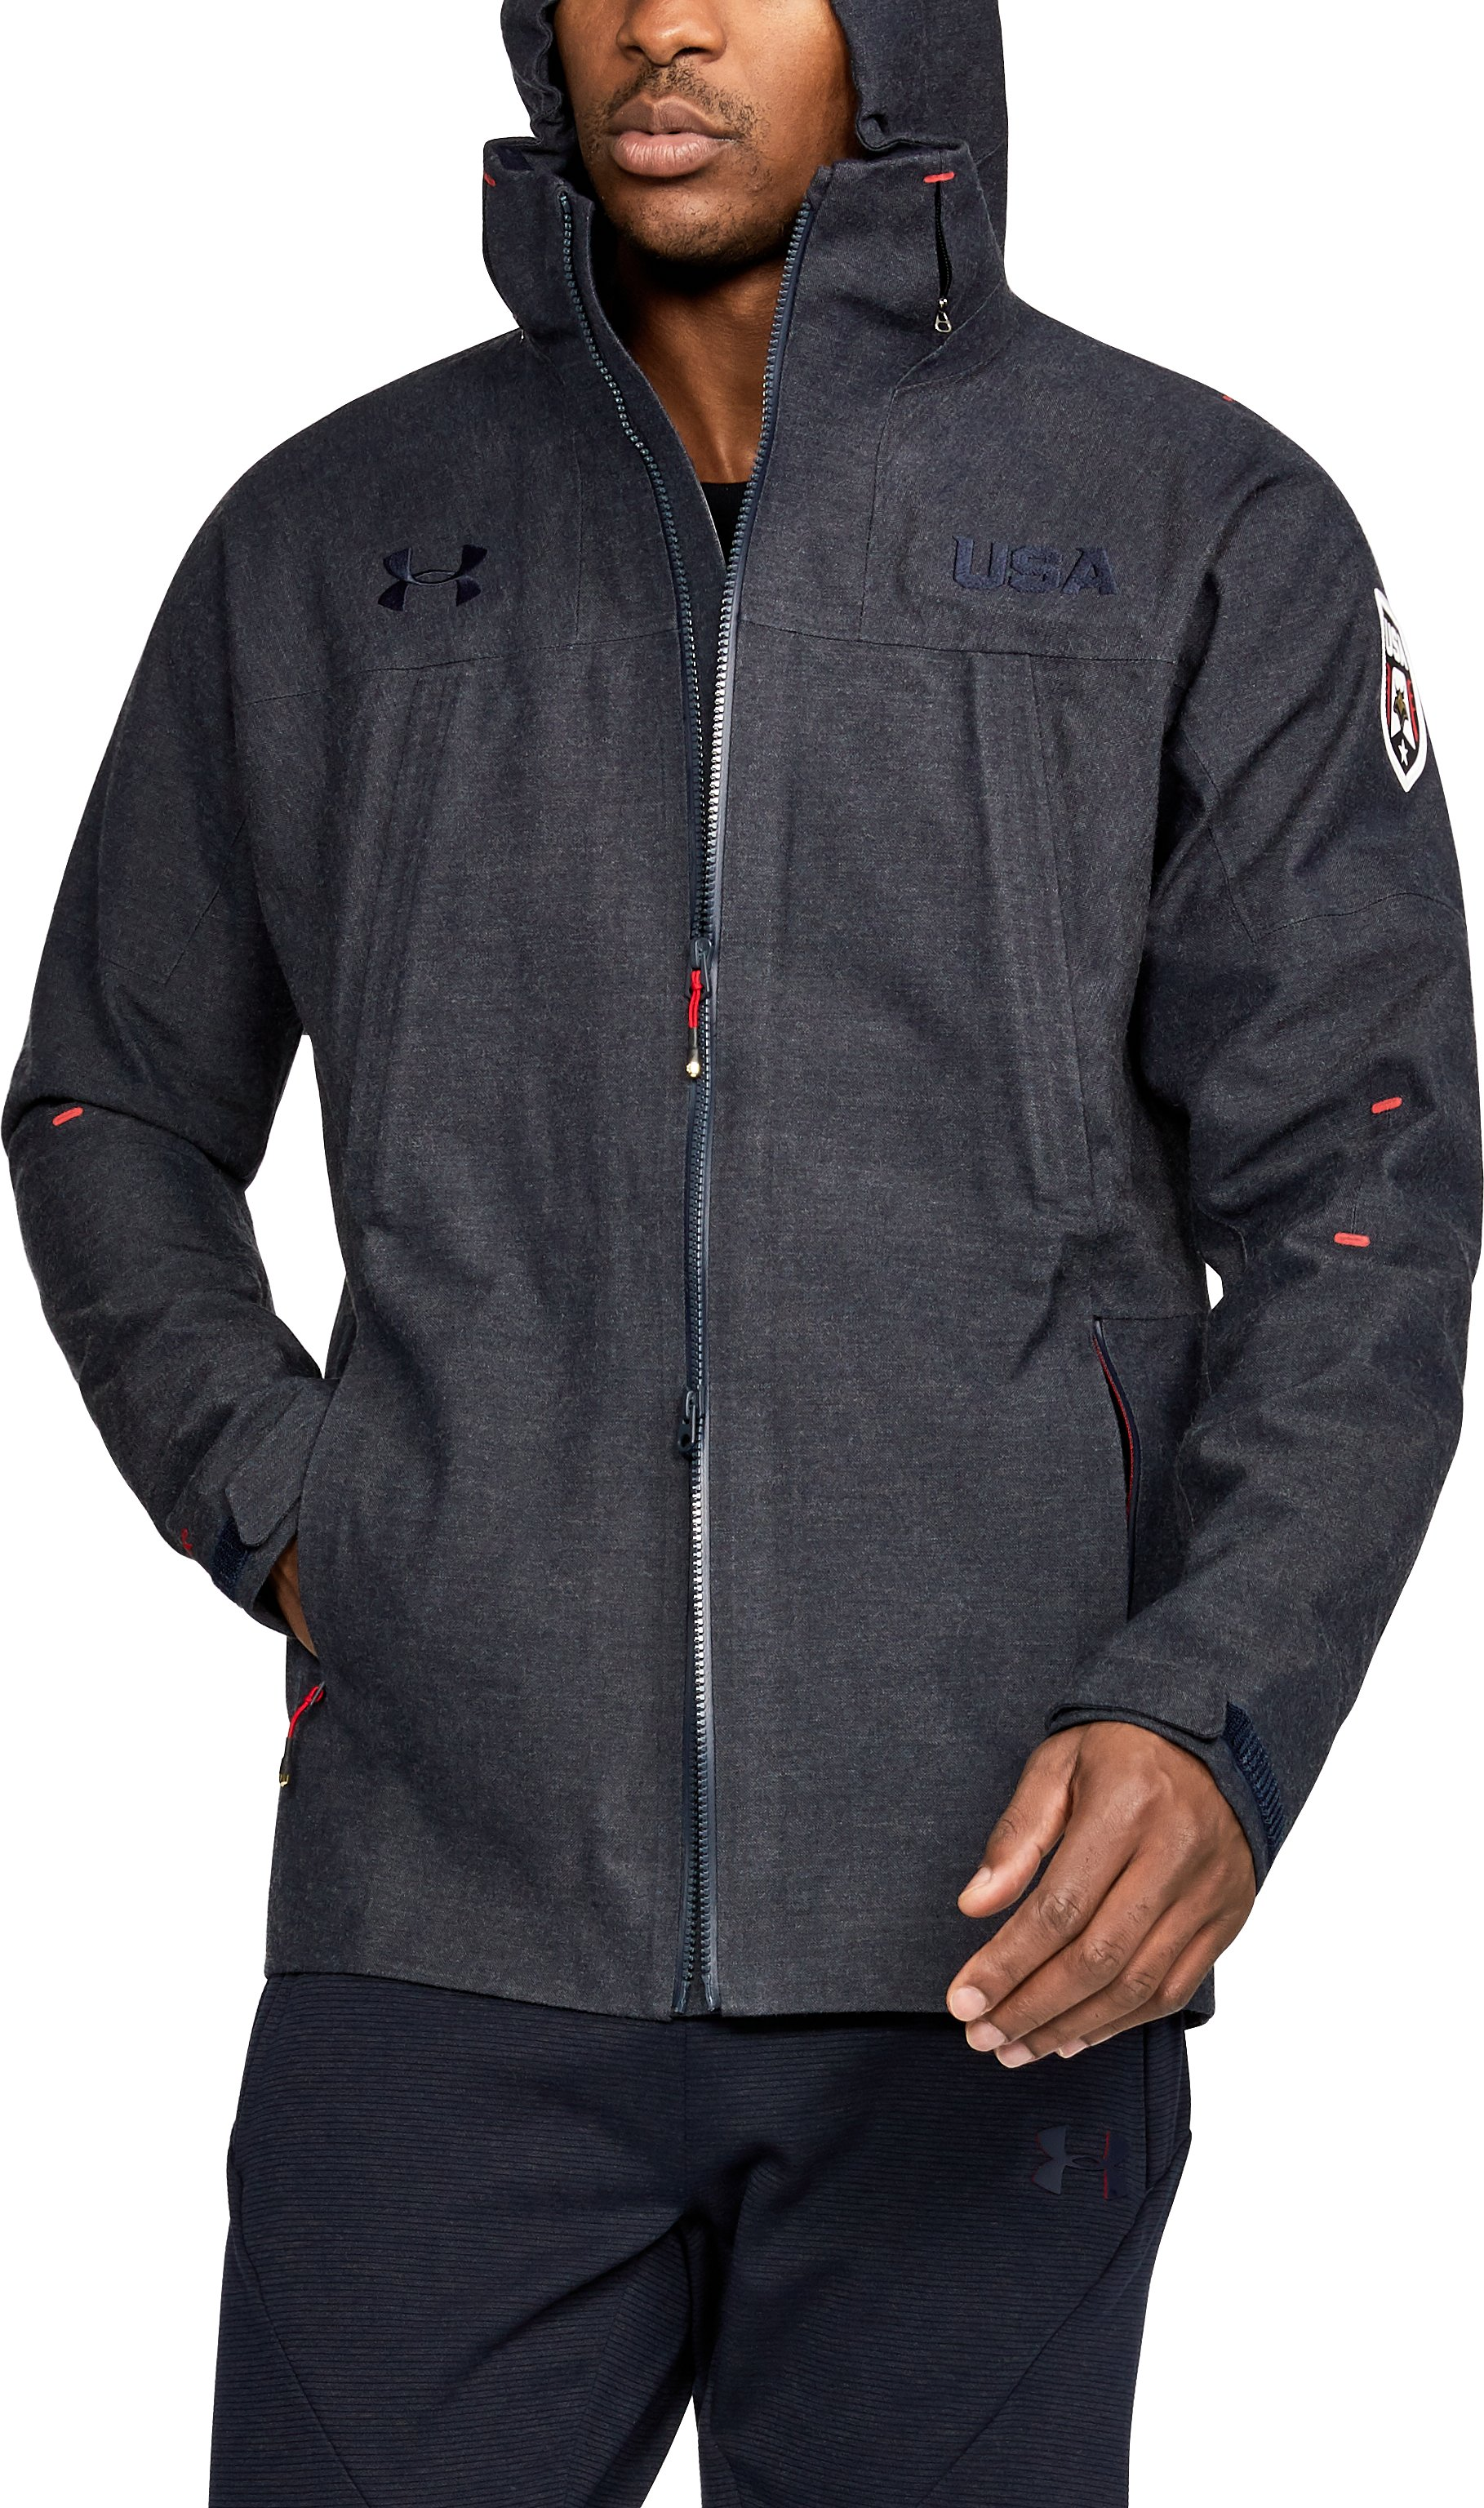 shell jackets Men's UA Stars & Stripes Shell Jacket Great Jacket....I get Compliments all the time on it....Quality is impeccable.